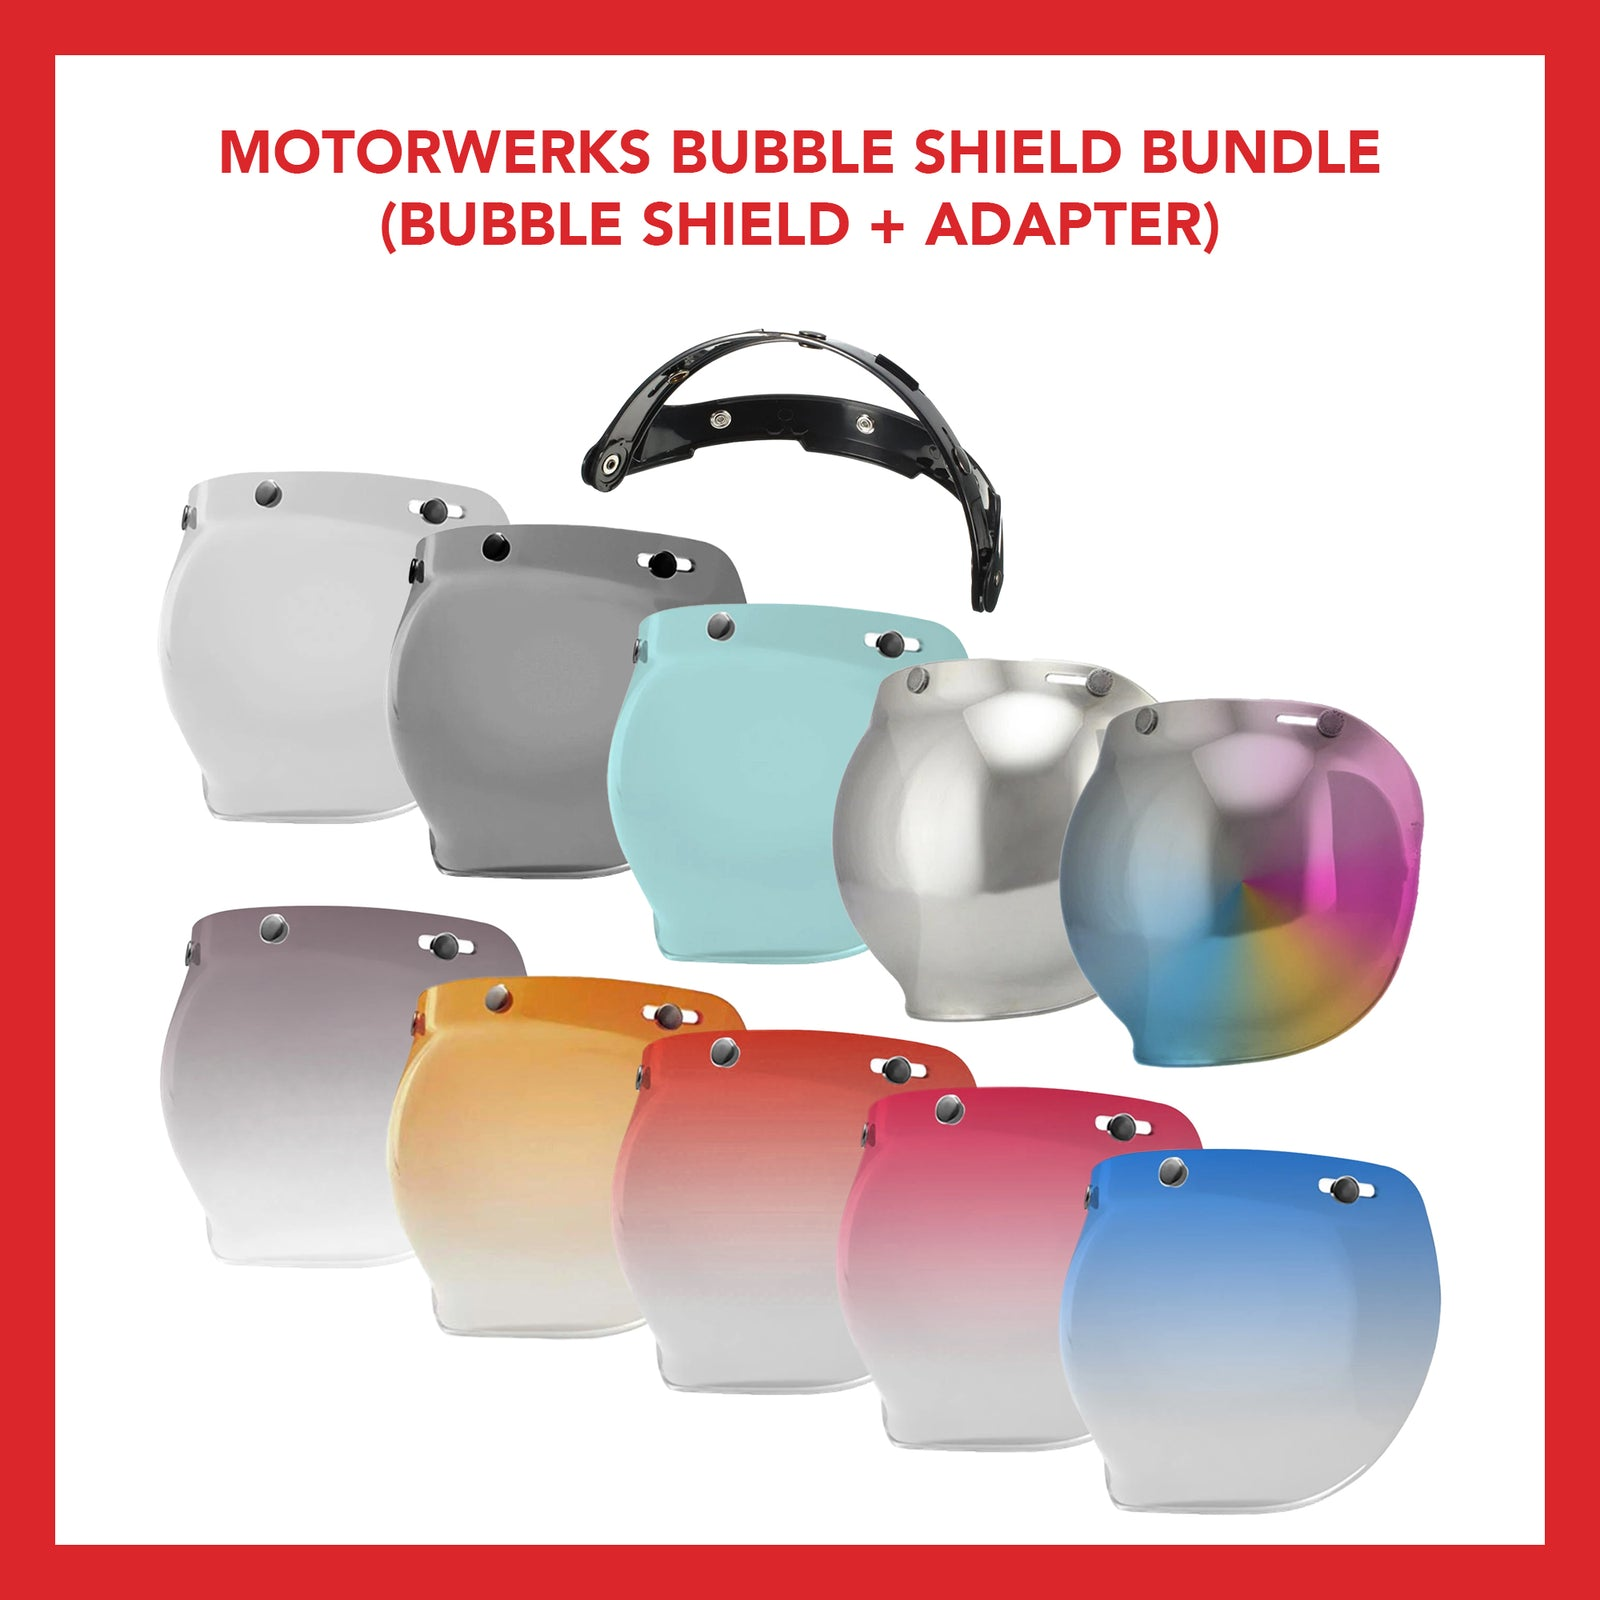 MW Bubble Shield Bundle